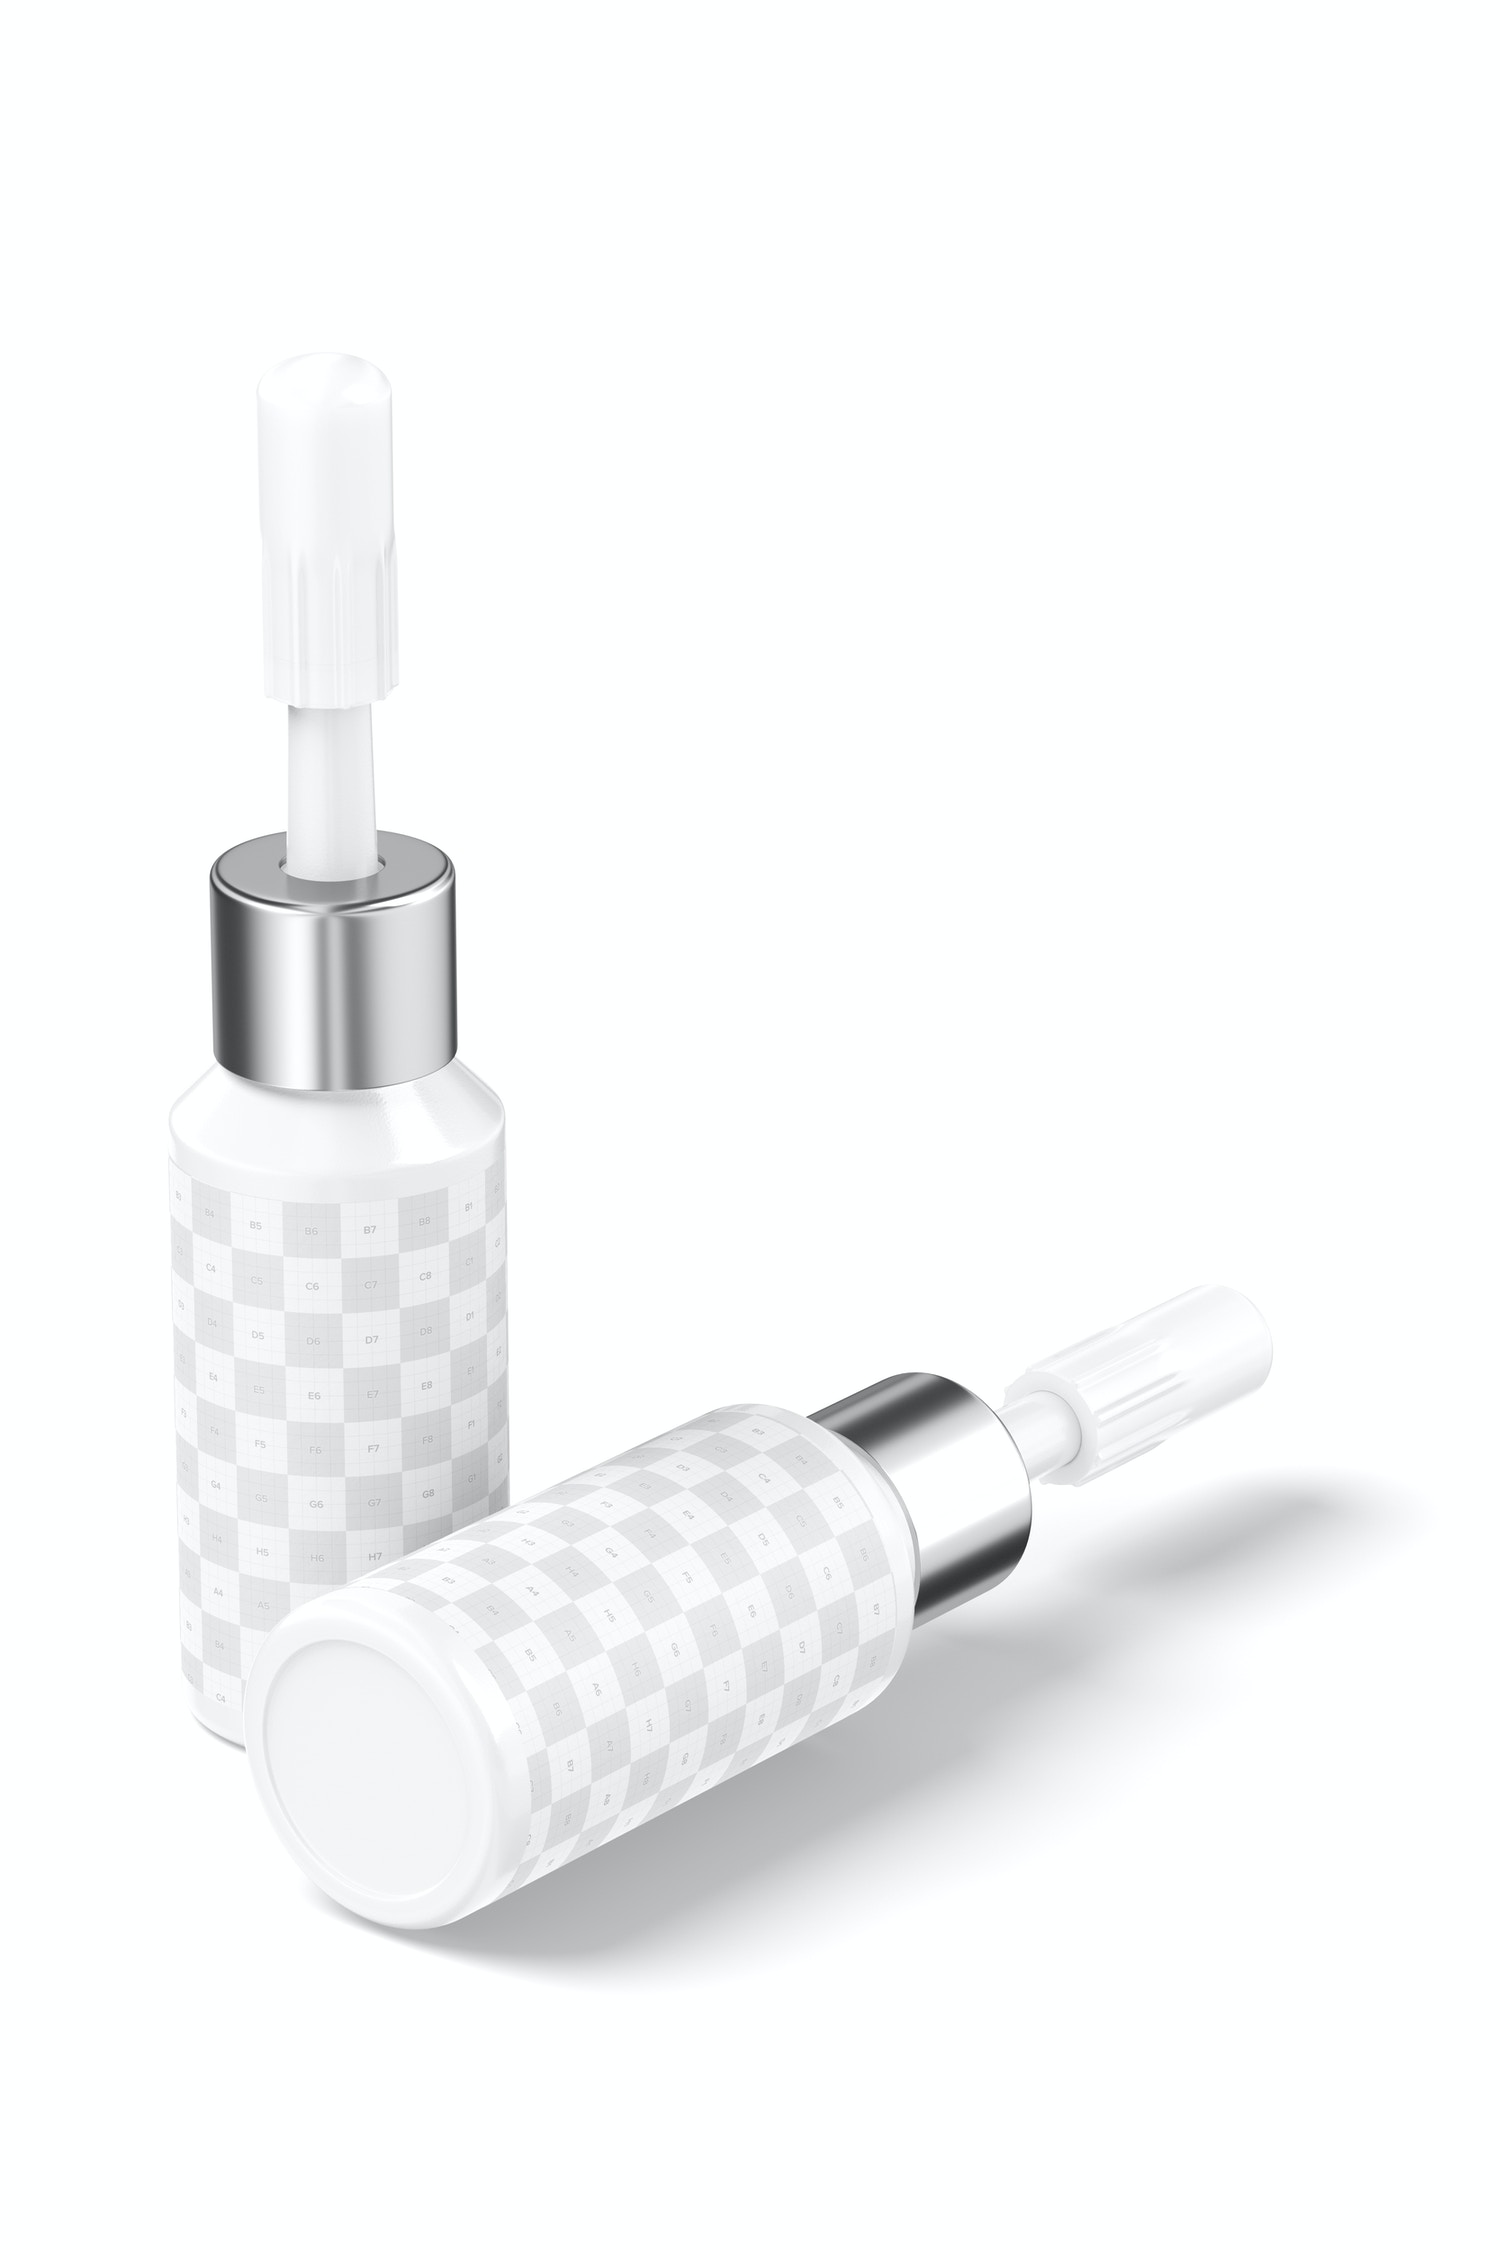 Cosmetic Micro Pigment Tattoo Bottles Mockup, Standing and Dropped